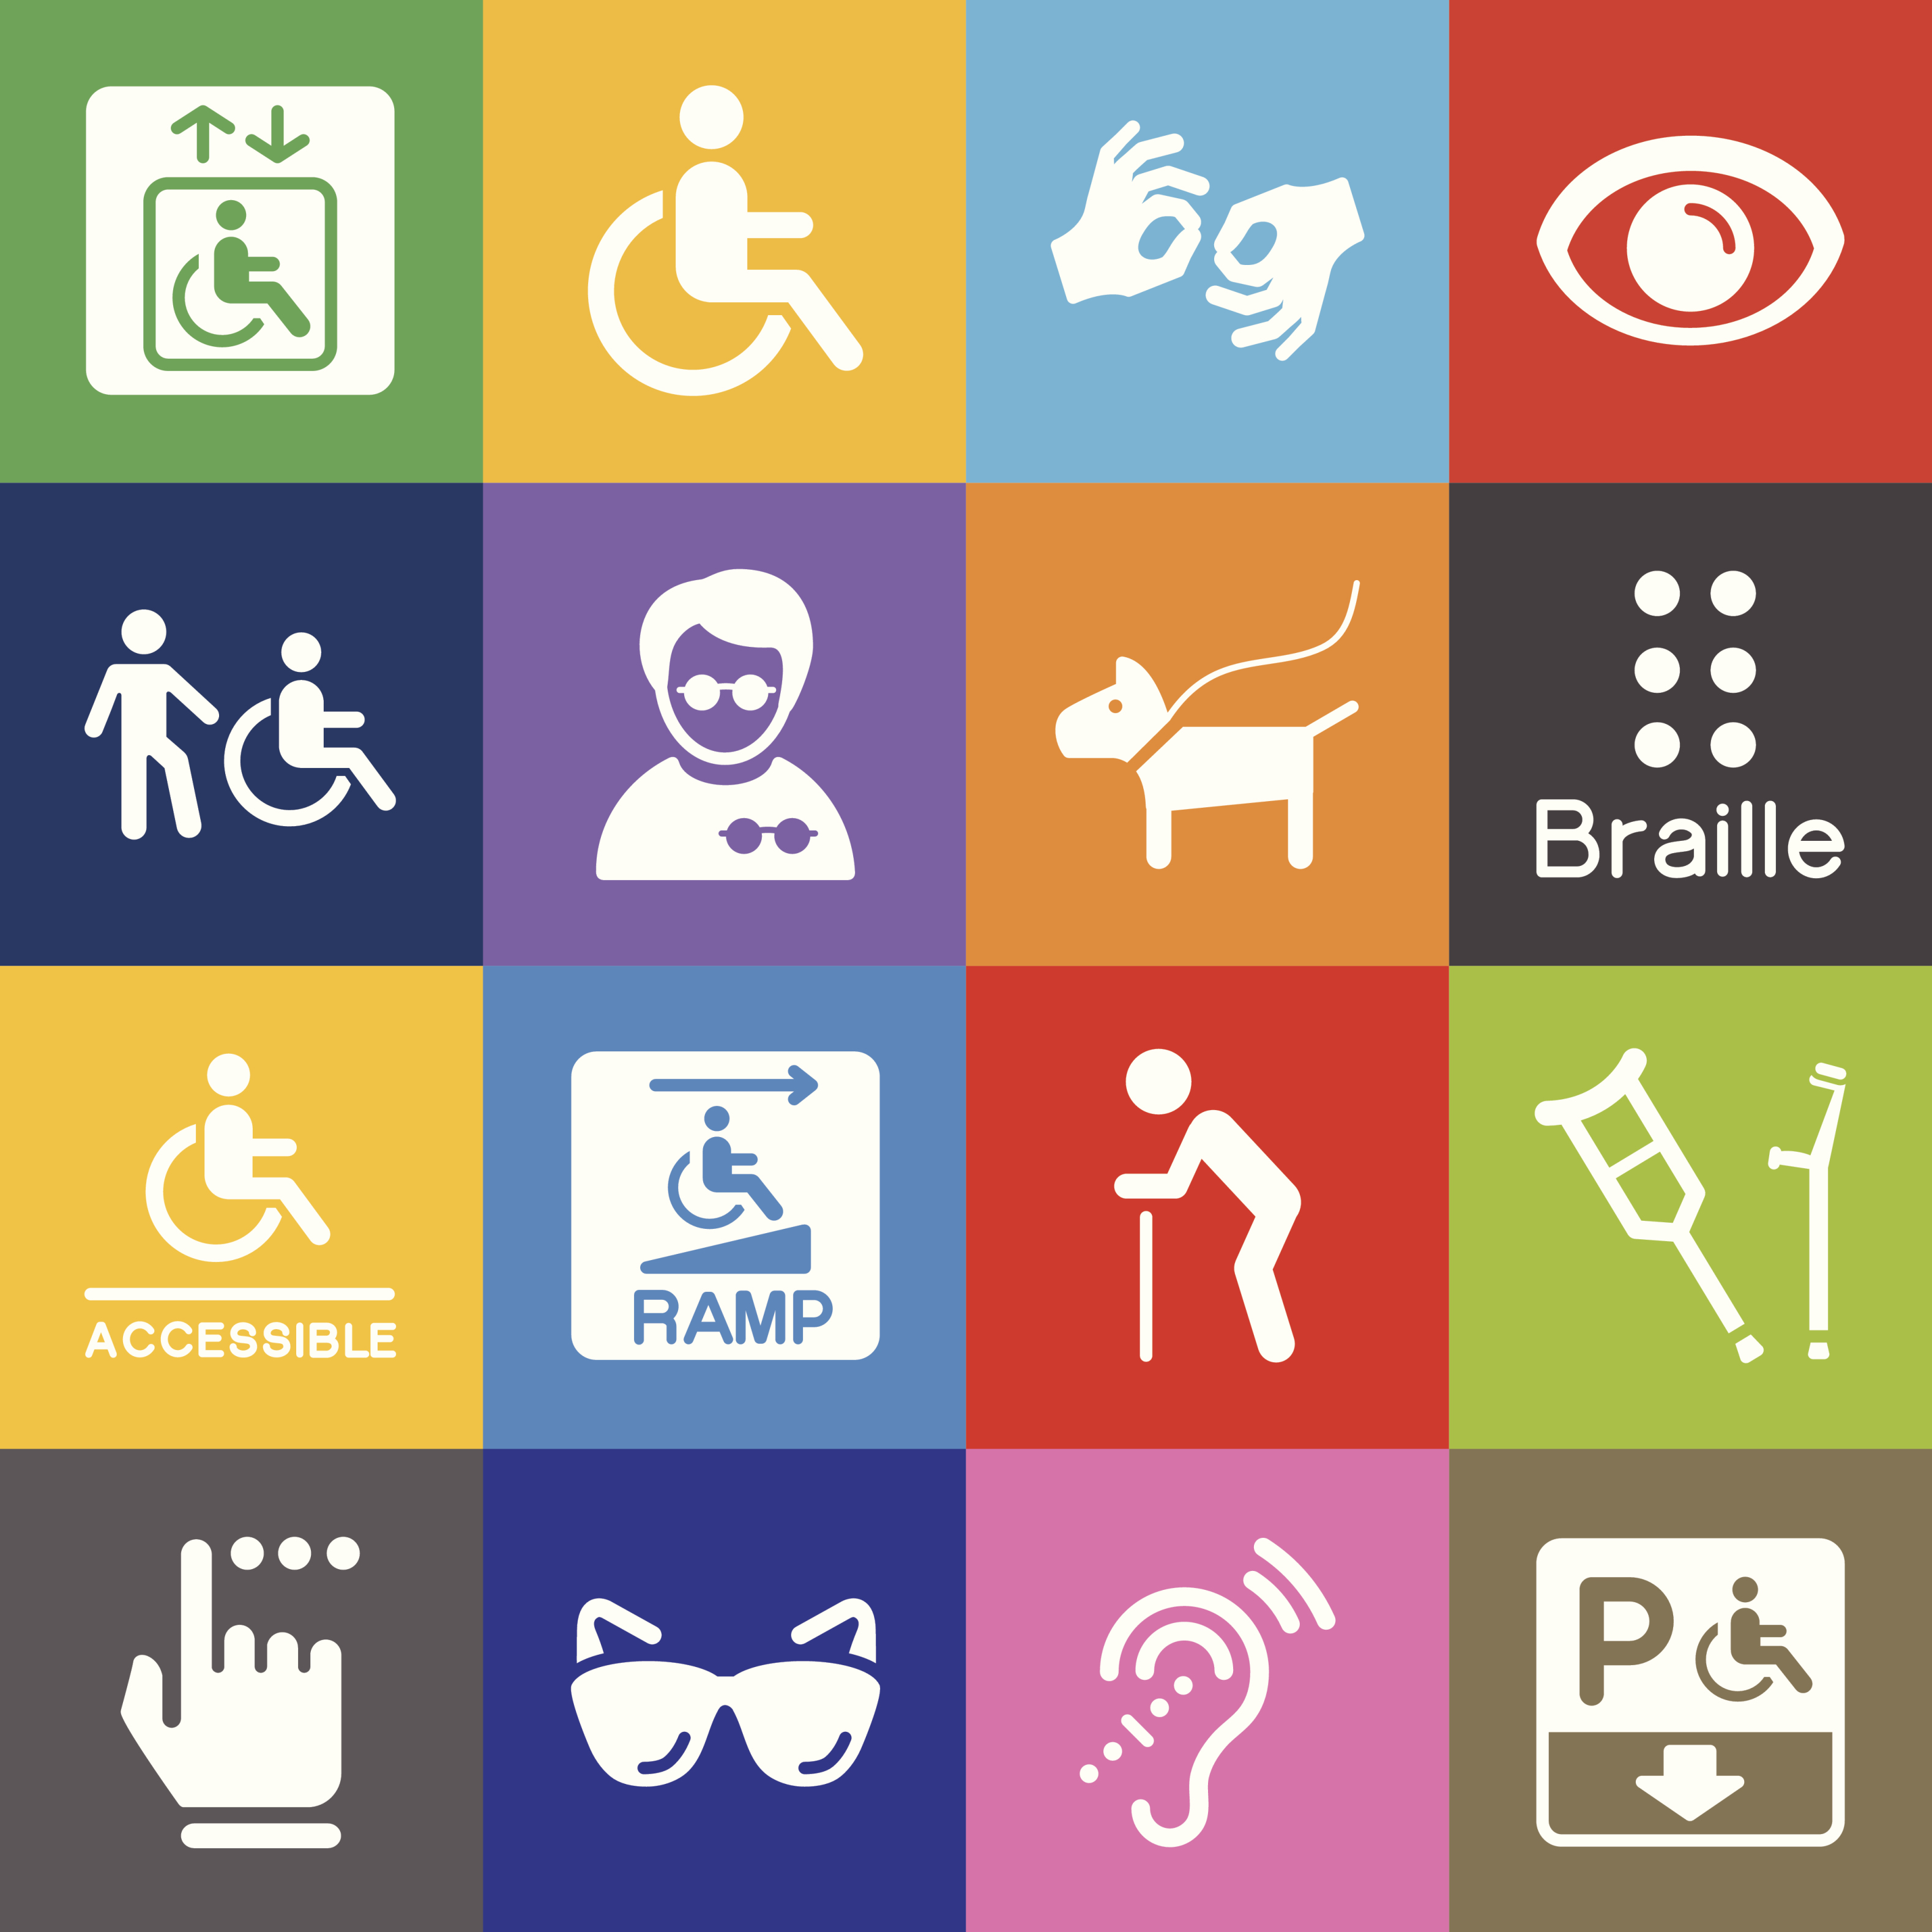 Accommodating people with disabilities dating of the exodus